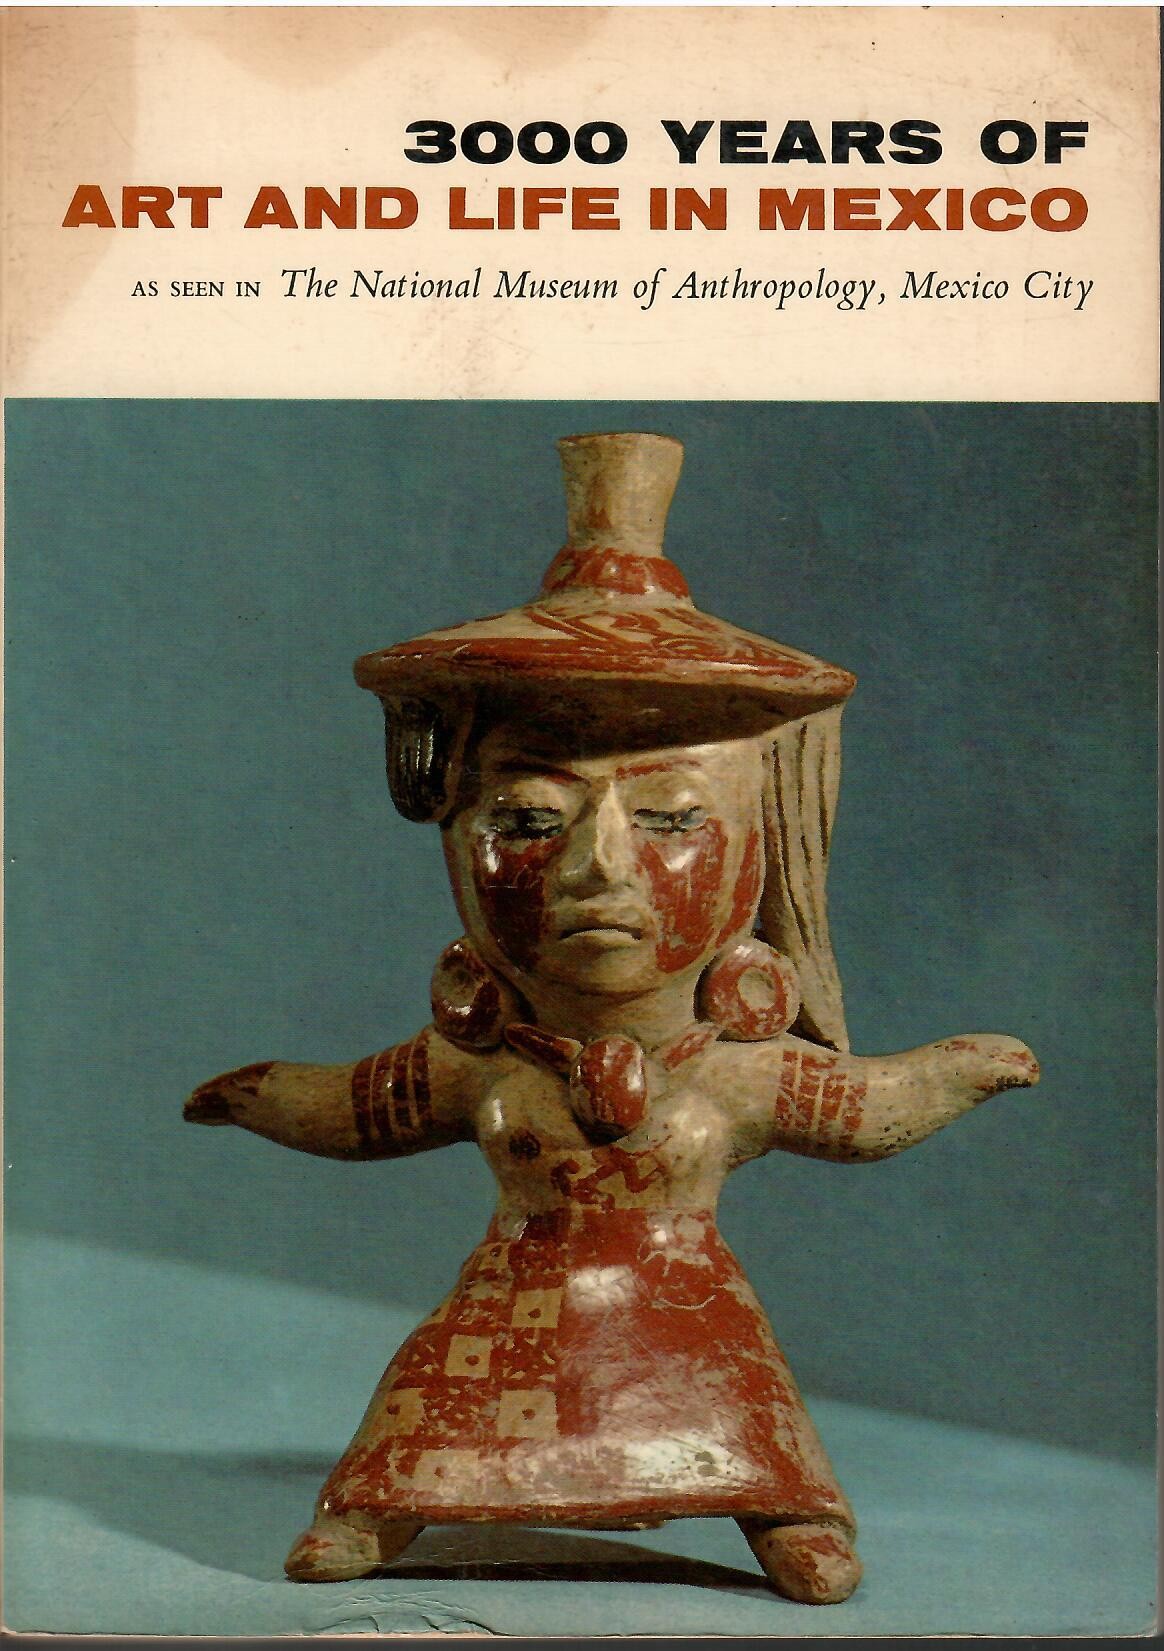 Image for As Seen in the National Museum of Anthropology, Nexico City; 3000 YEARS OF ART AND LIFE IN MEXICO